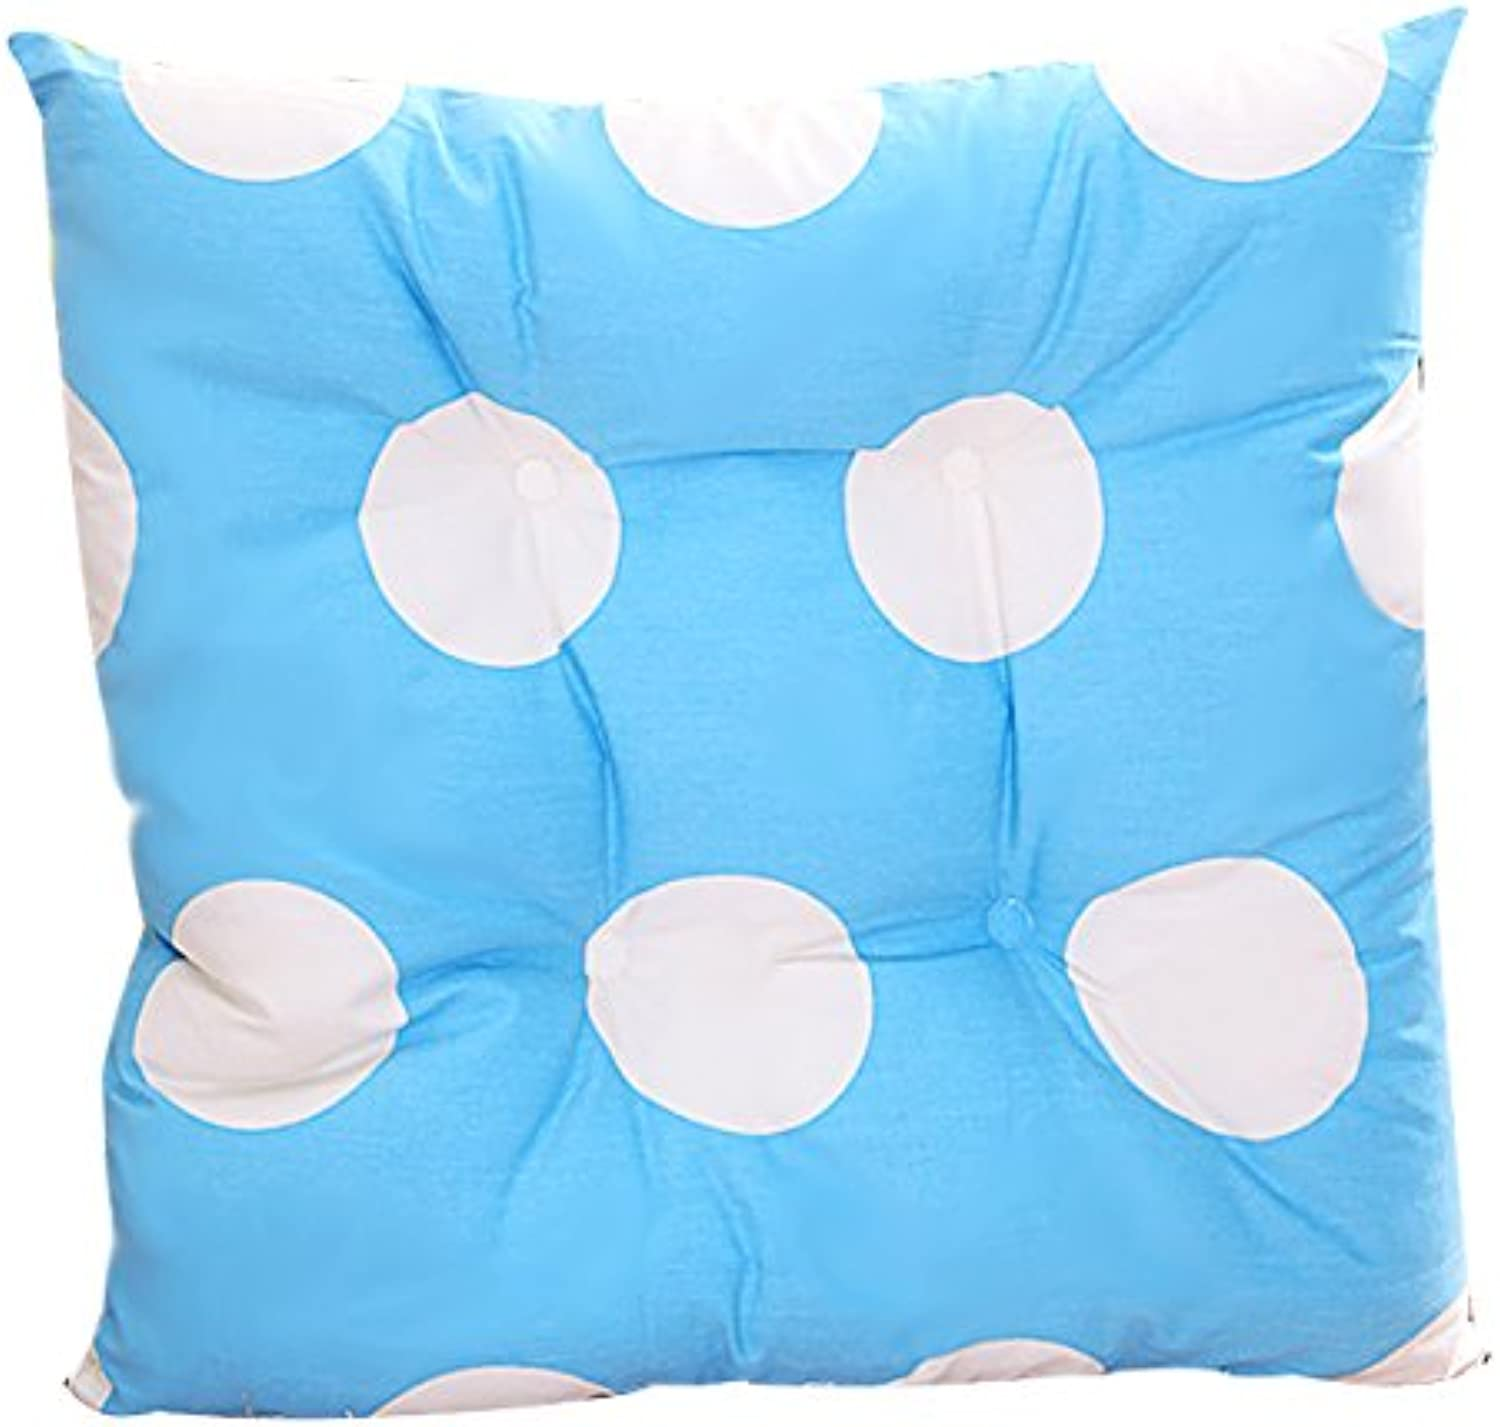 Zuodaongy Thick Candy - colord Cushion Office Table Chair Cushion,43X43Cm,Big bluee Point